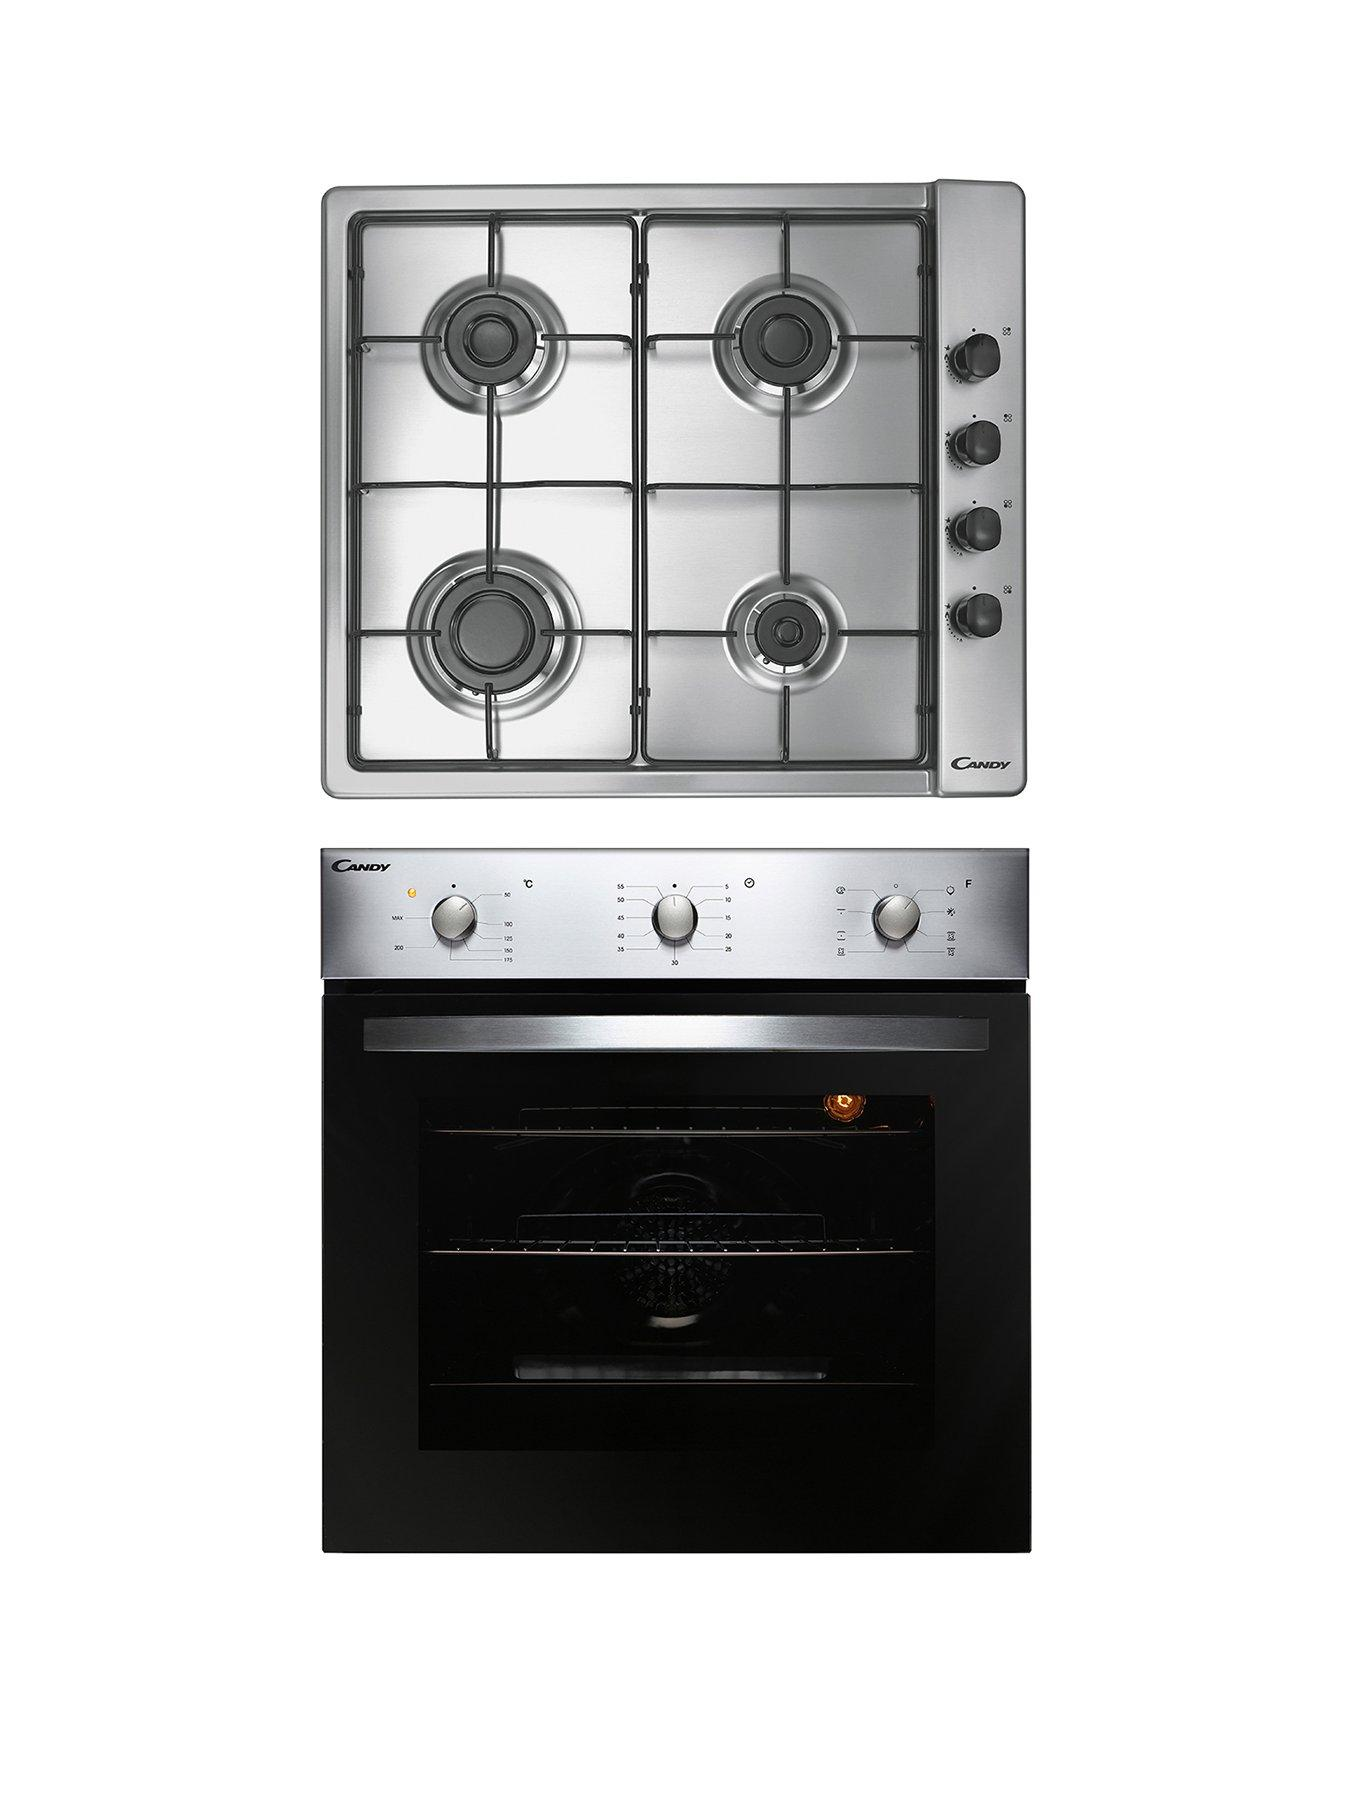 4  Oven Cooker Hob Control Knob for INDESIT BEKO  Stainless Steel effect Silver